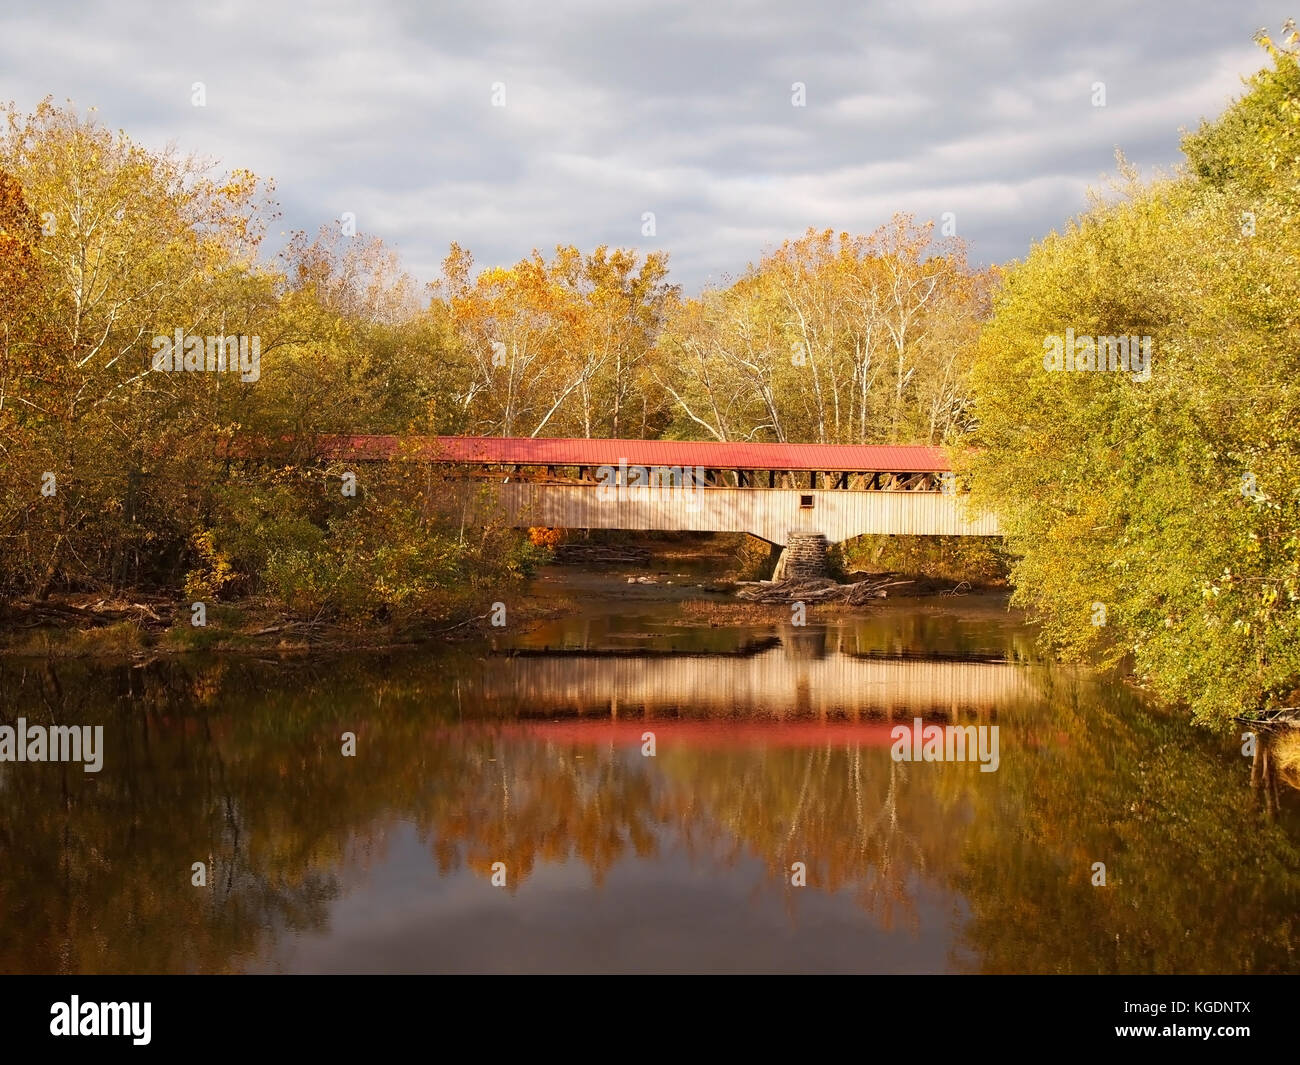 The Academia Pomeroy Covered Bridge, across the Tuscarora River in Juniata County, Pennsylvania, on an autumn day. Stock Photo